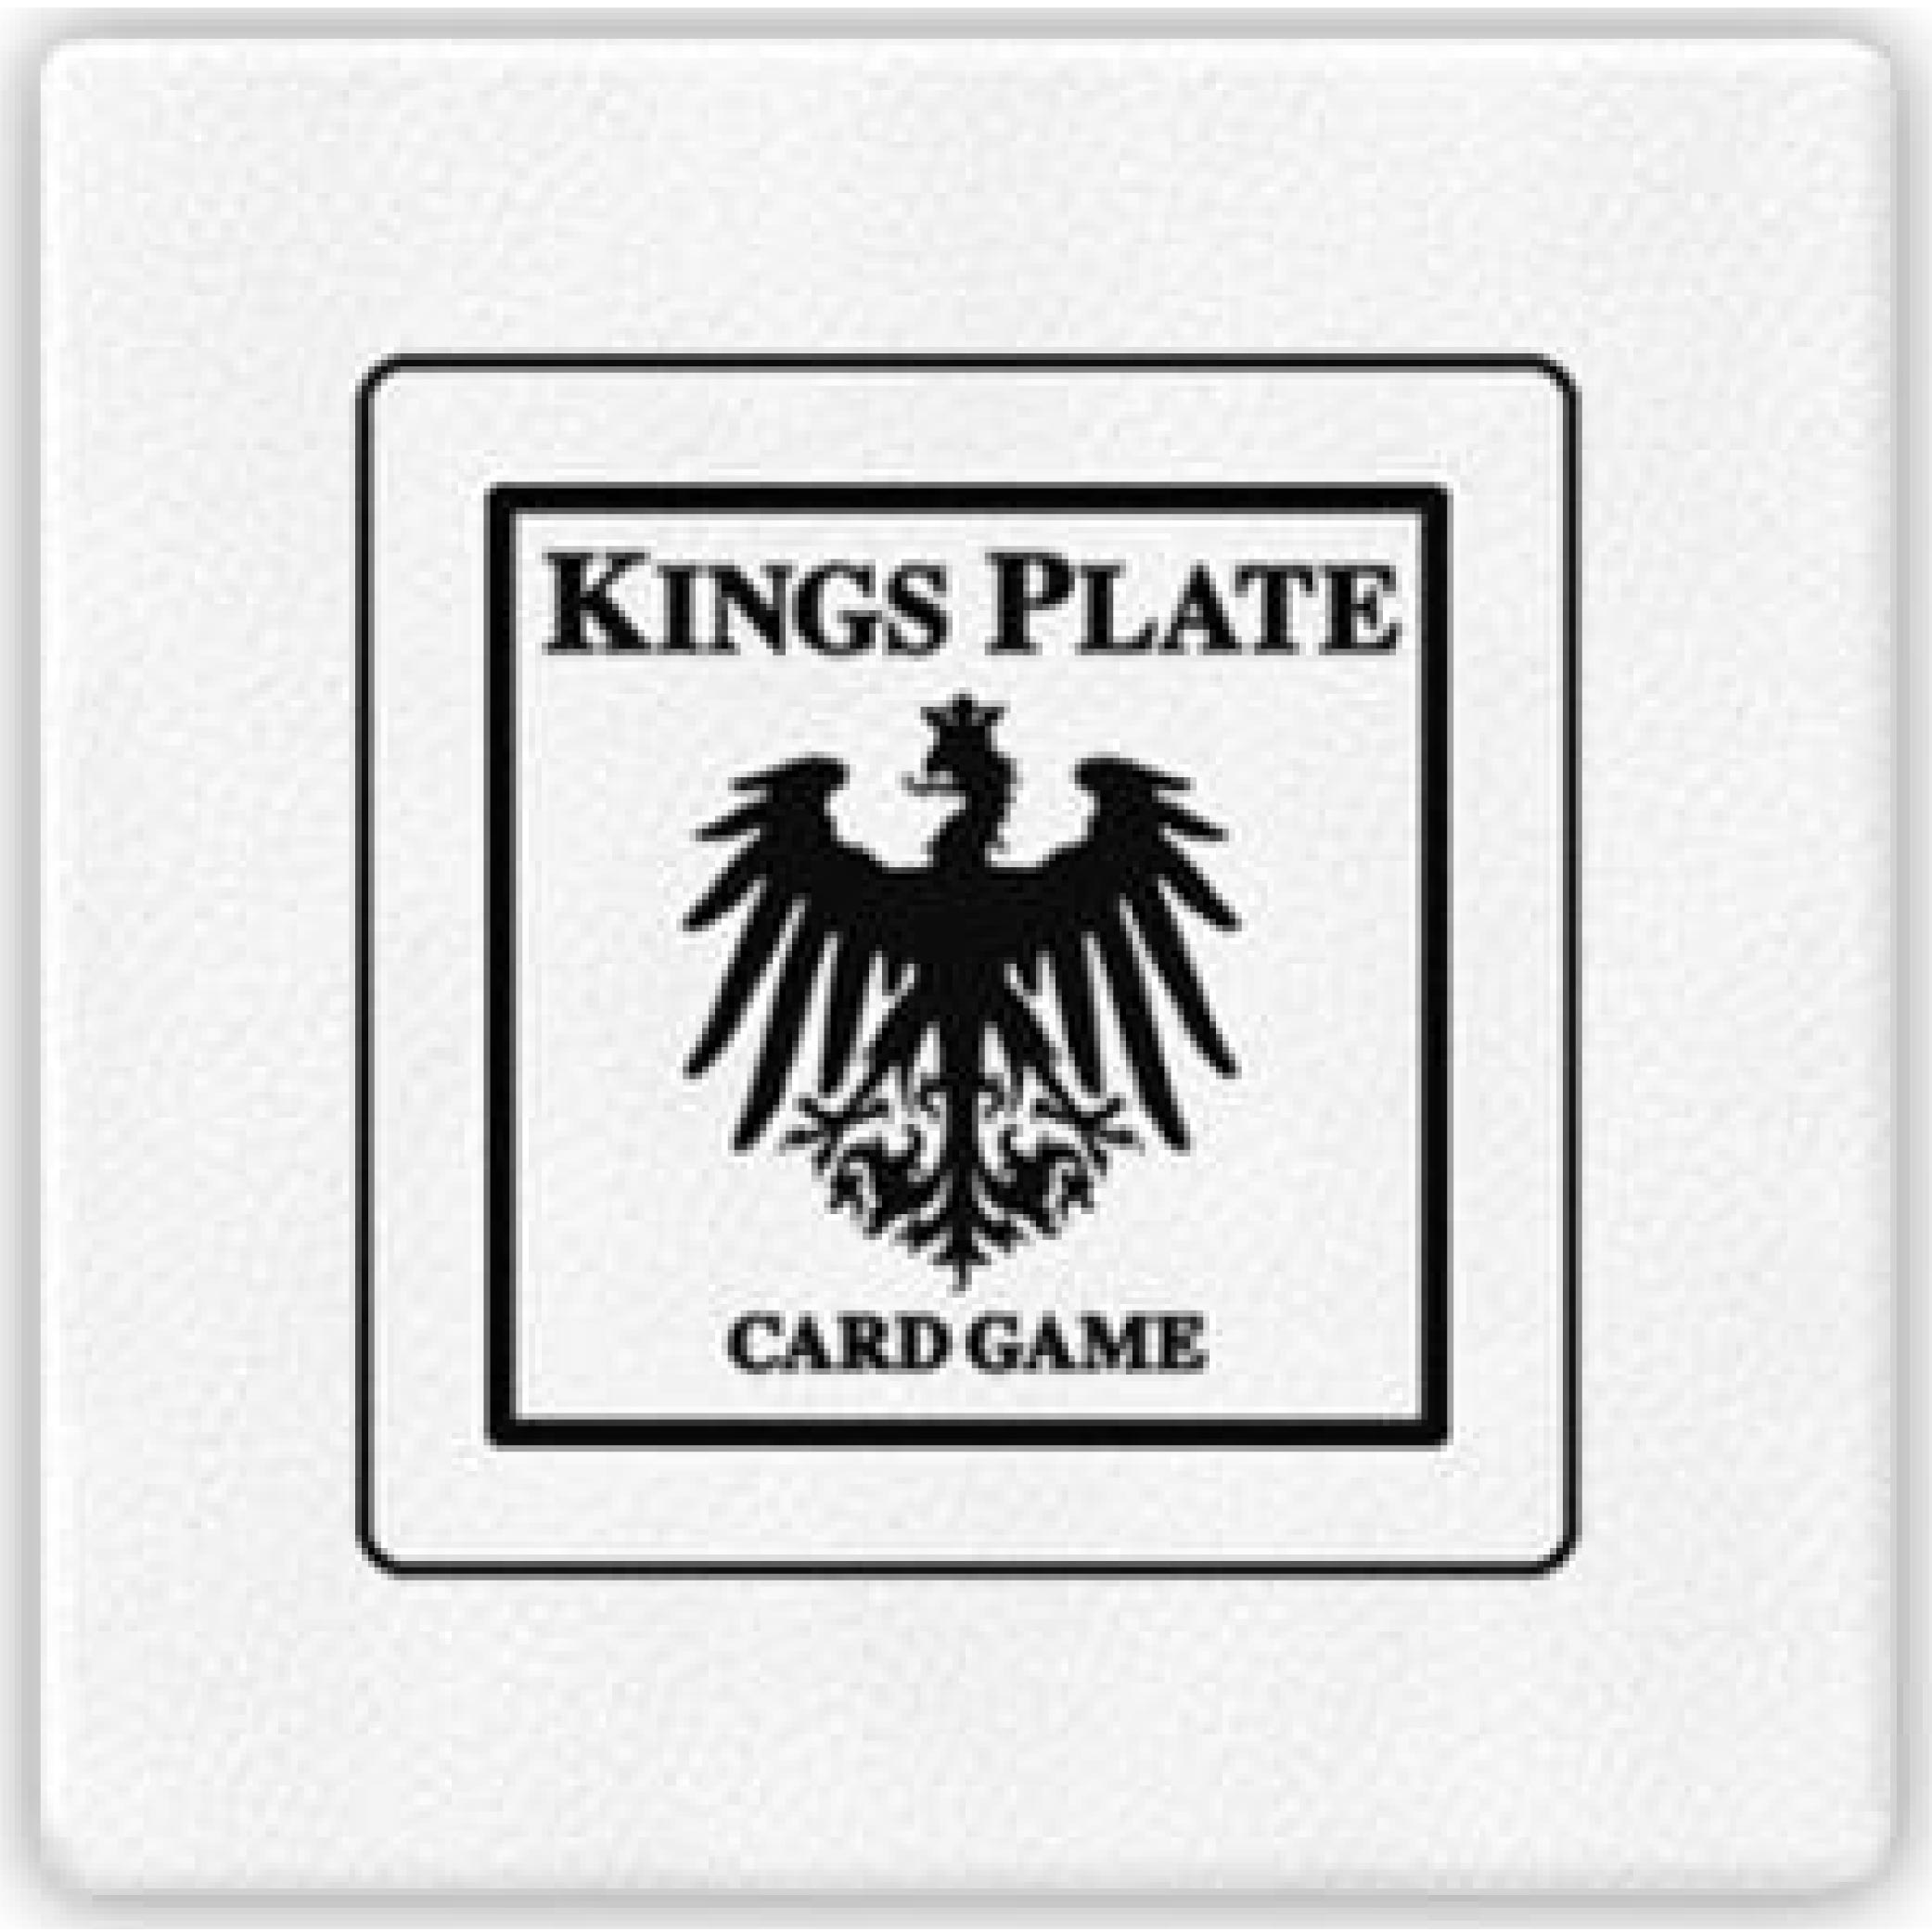 Kings_Plate__Car_50c207a10812c.jpg